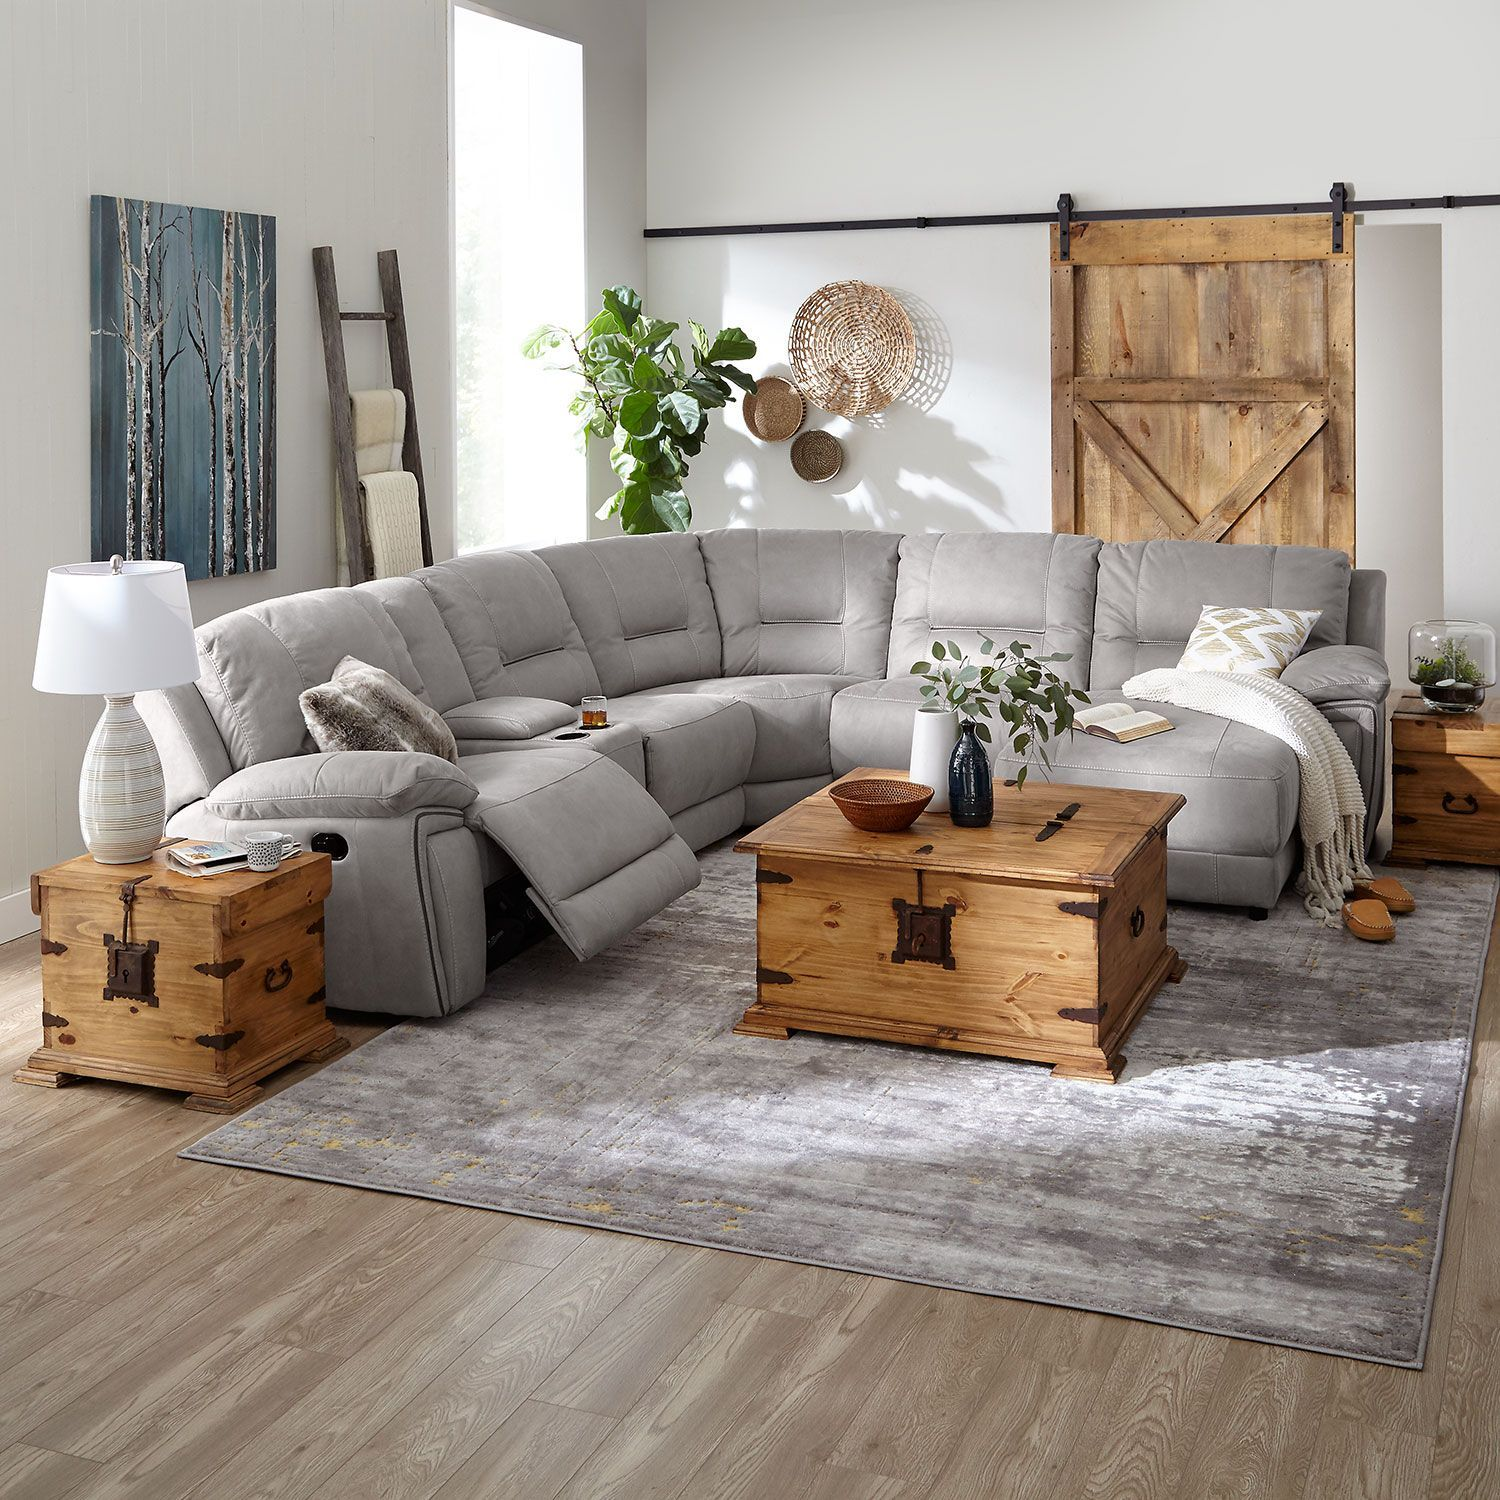 Cool Living Room Furniture: Cool Pick. The Easy-to-coordinate Grey Colour Of The